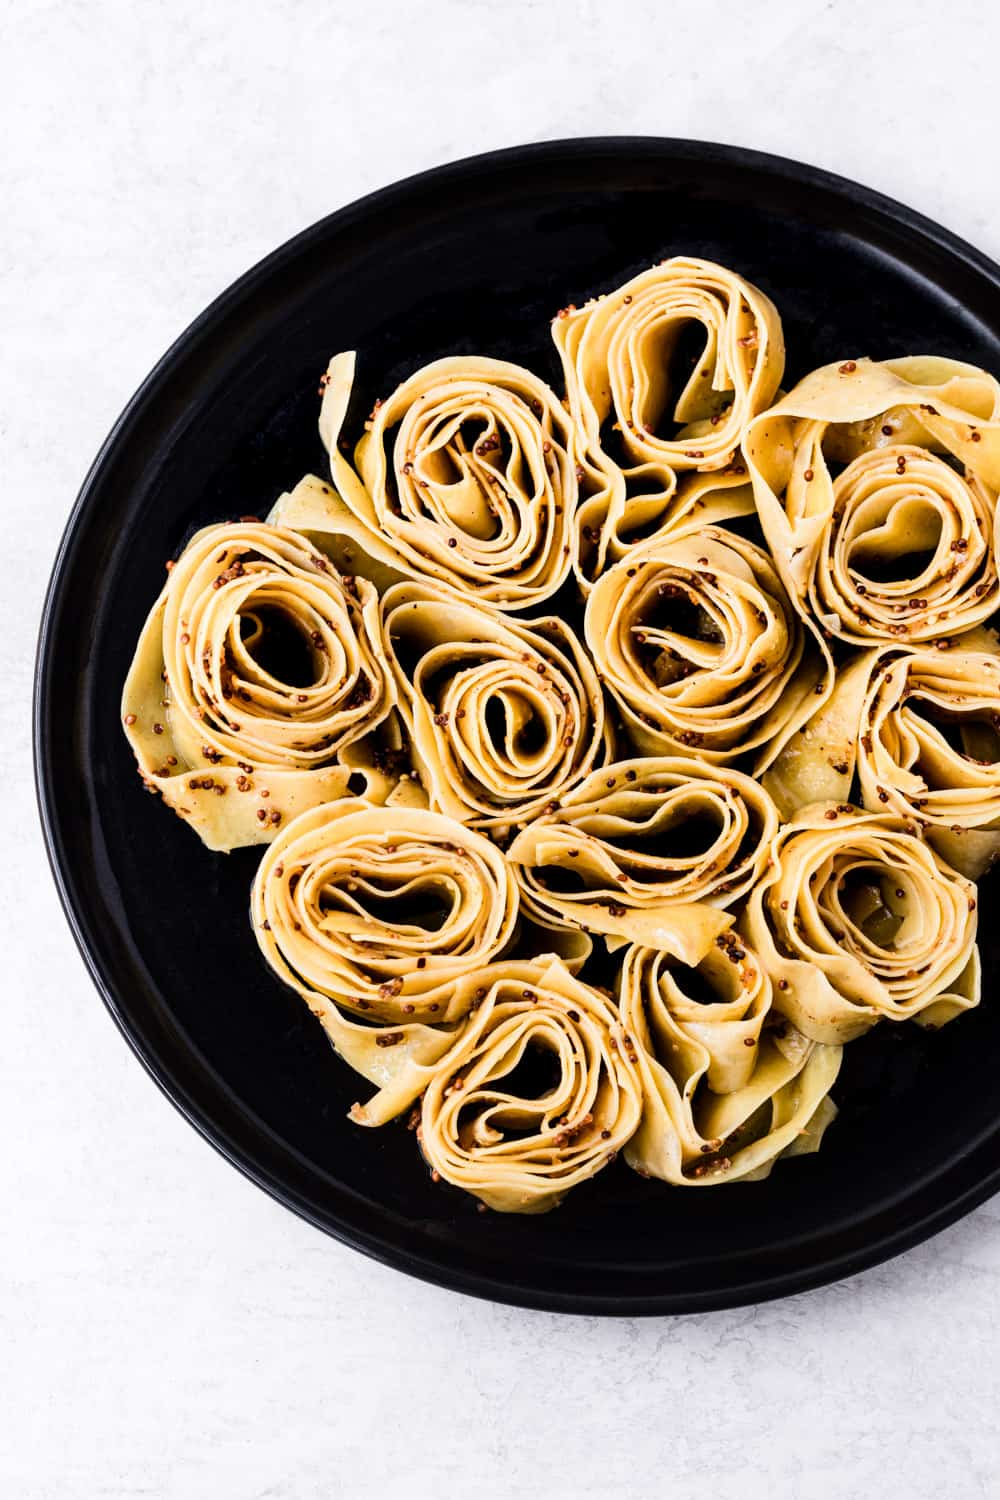 in process shot of the pappardelle, overhead shot